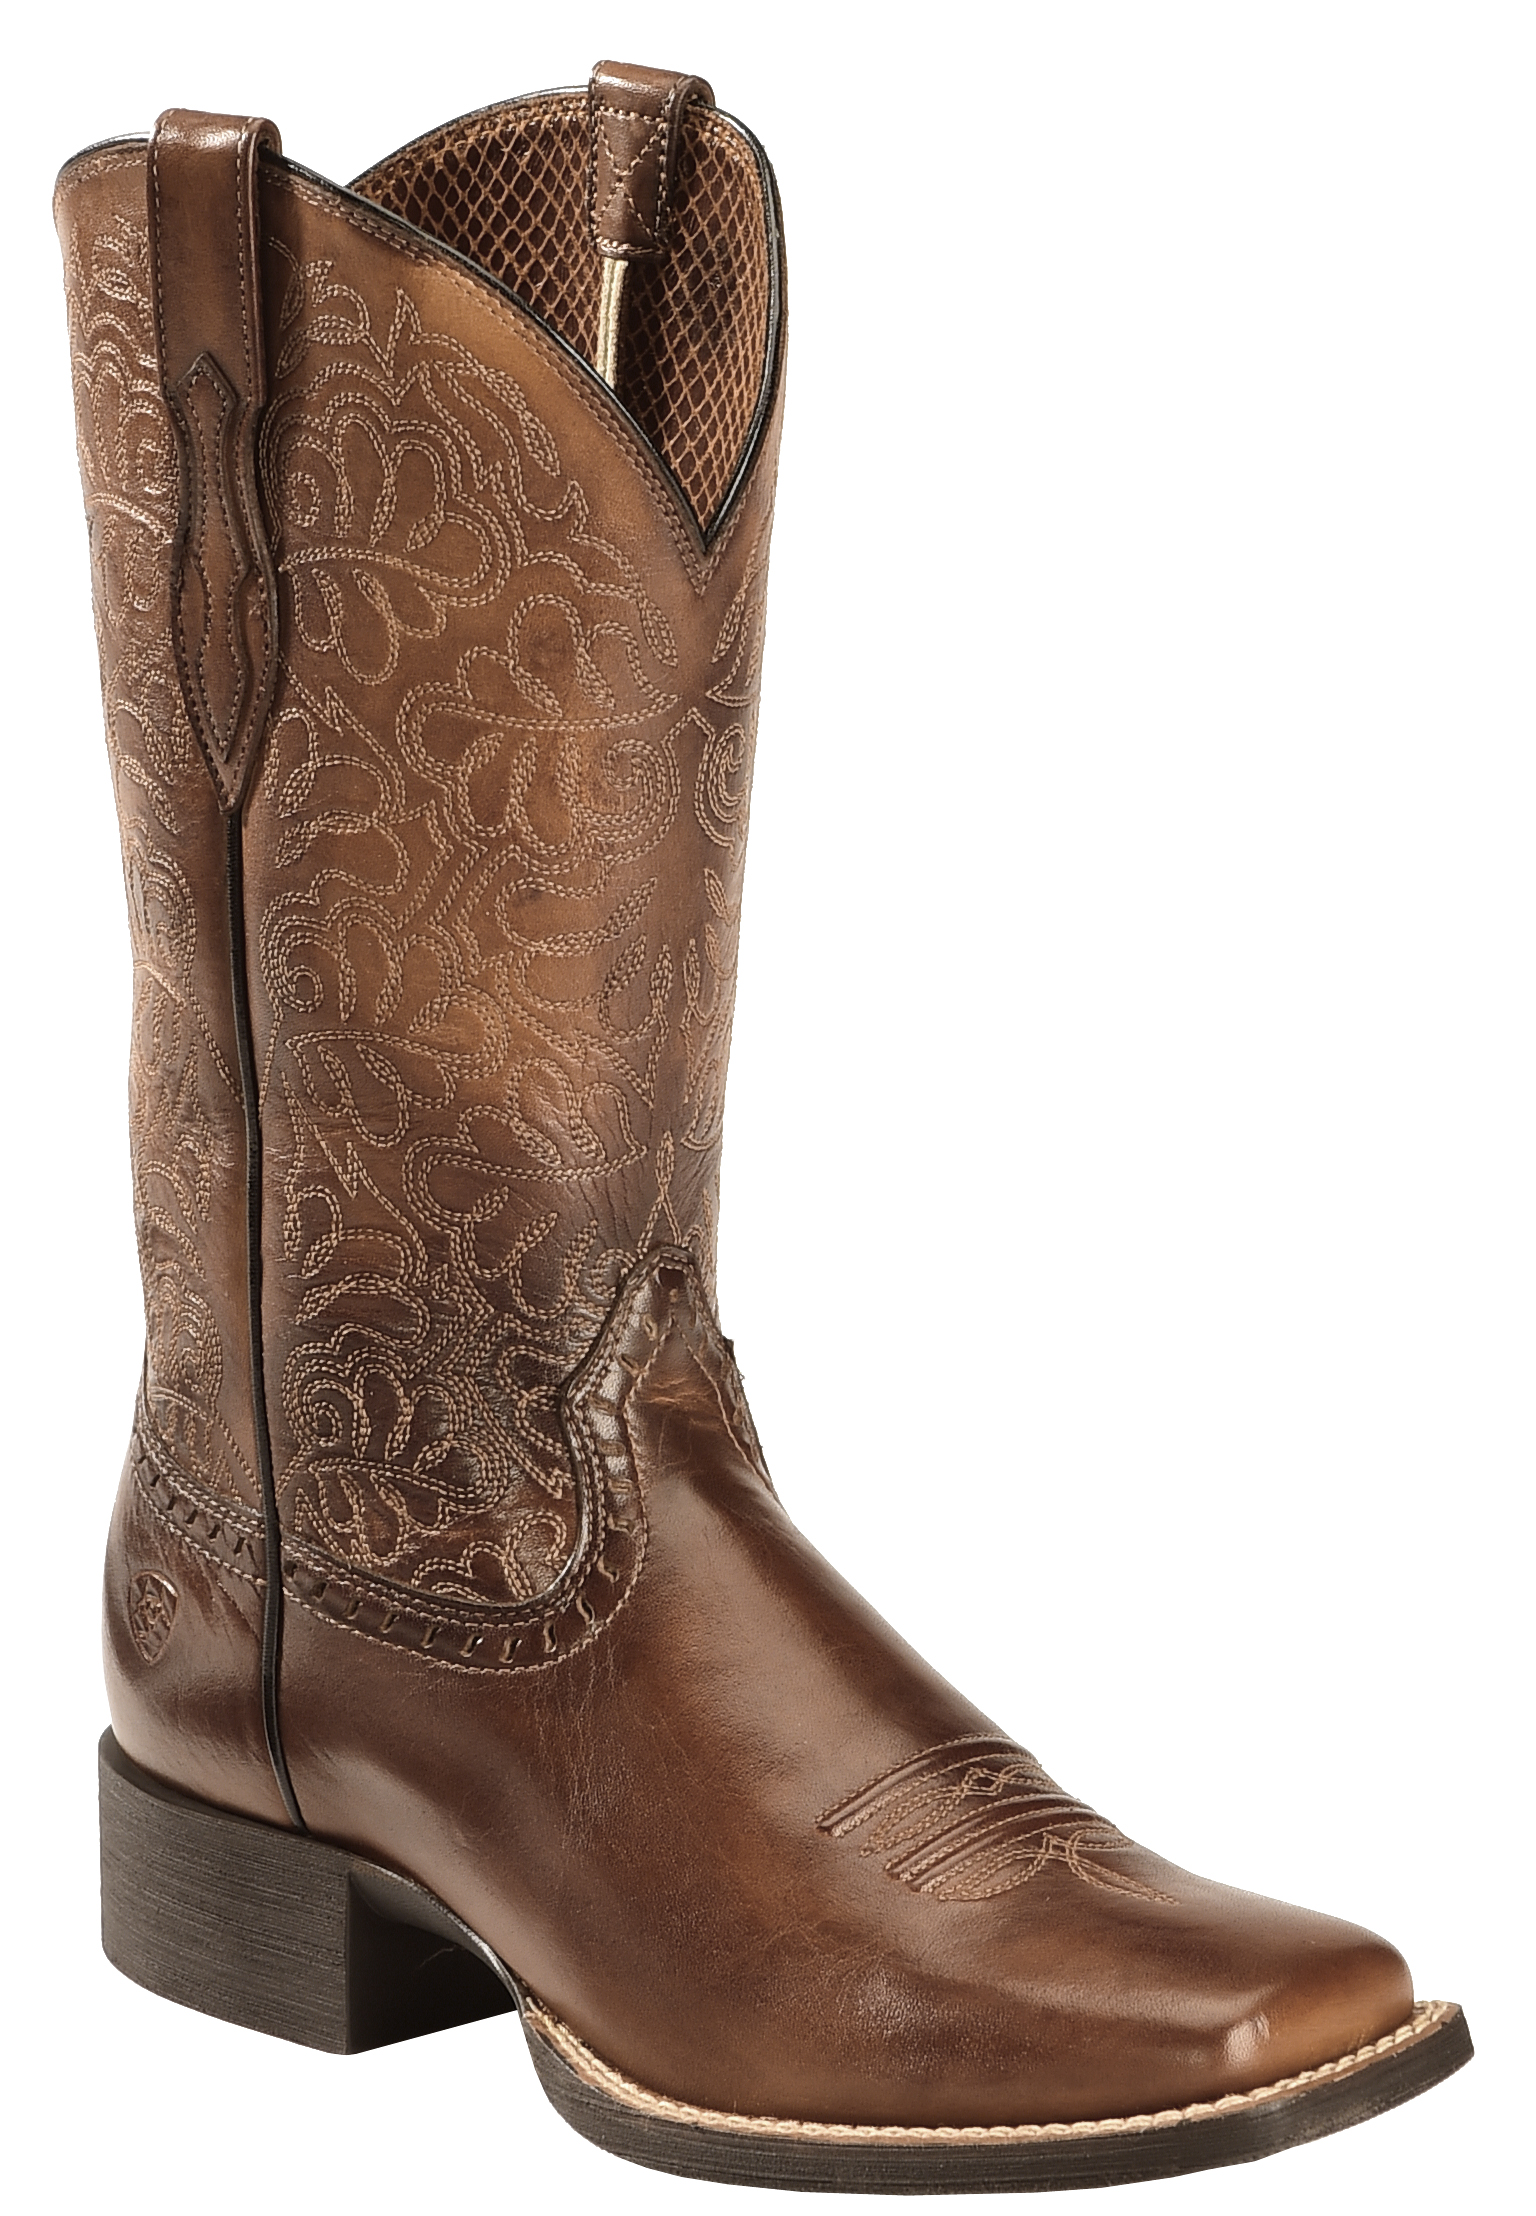 Ariat Rich Brown Round Up Remuda Cowgirl Boots Square